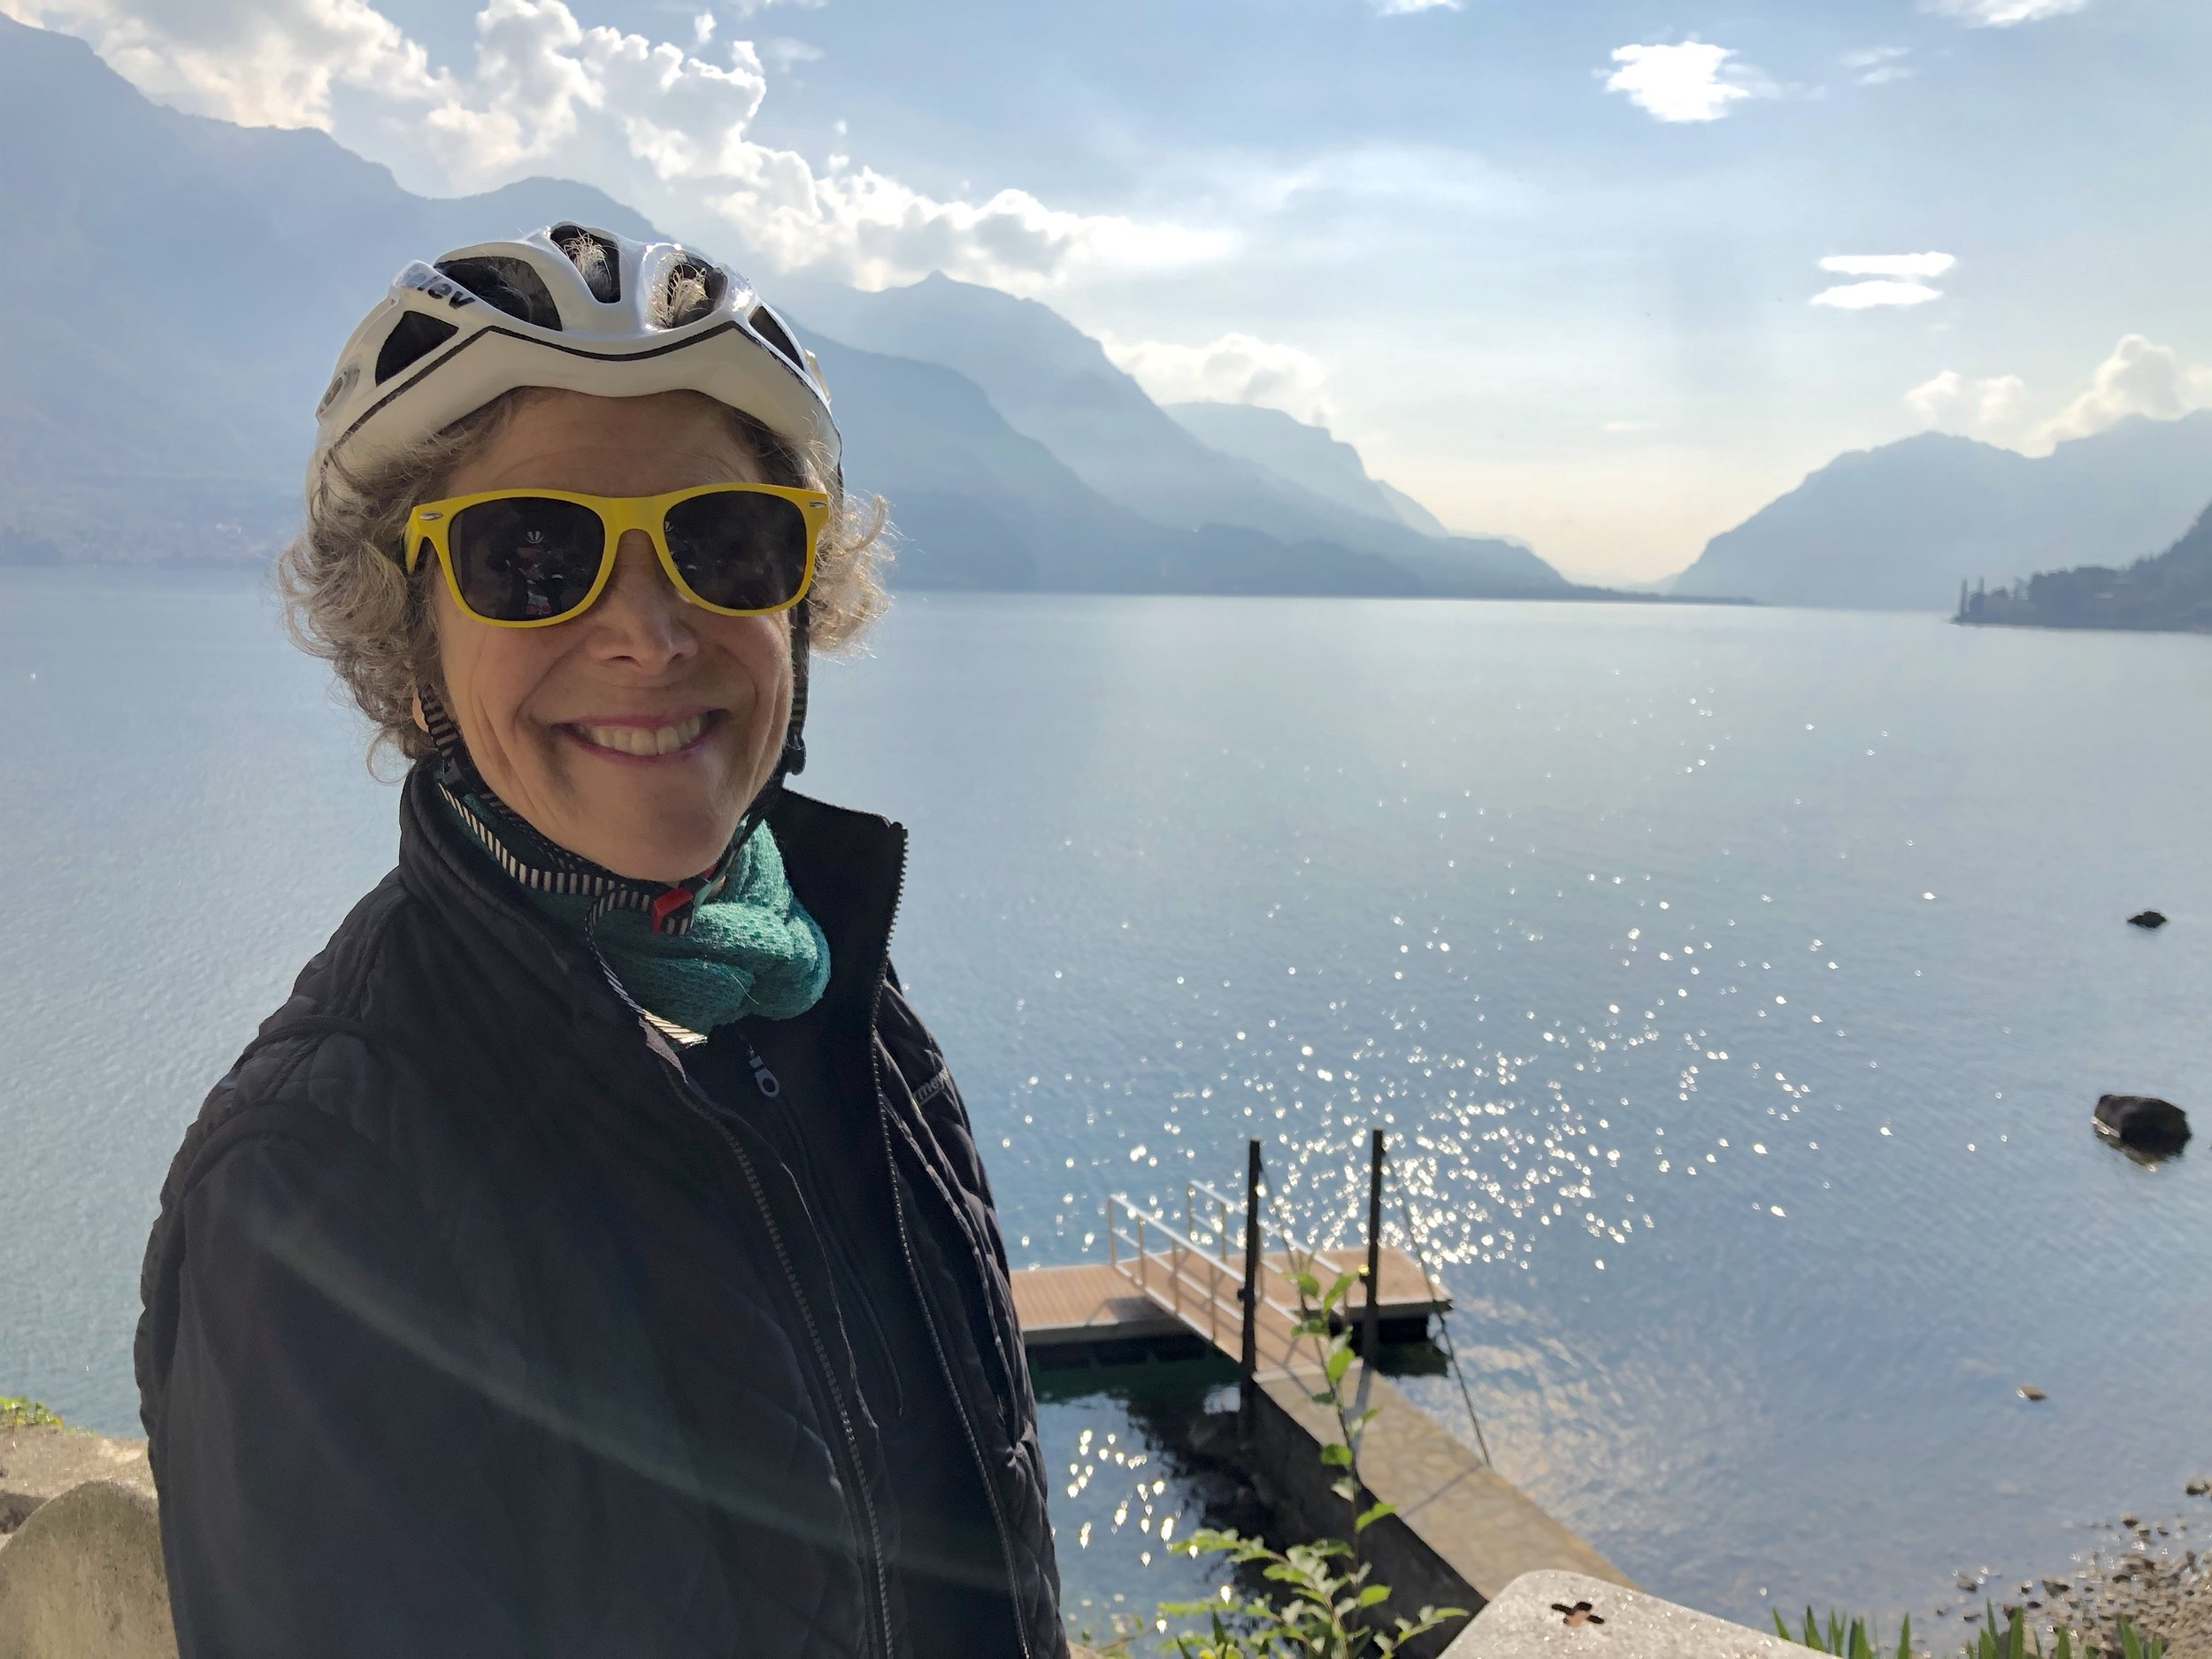 For the non-cyclist there are plenty of options, even a leisurely e-bike ride will take you to some of the most beautiful spots on the lake.